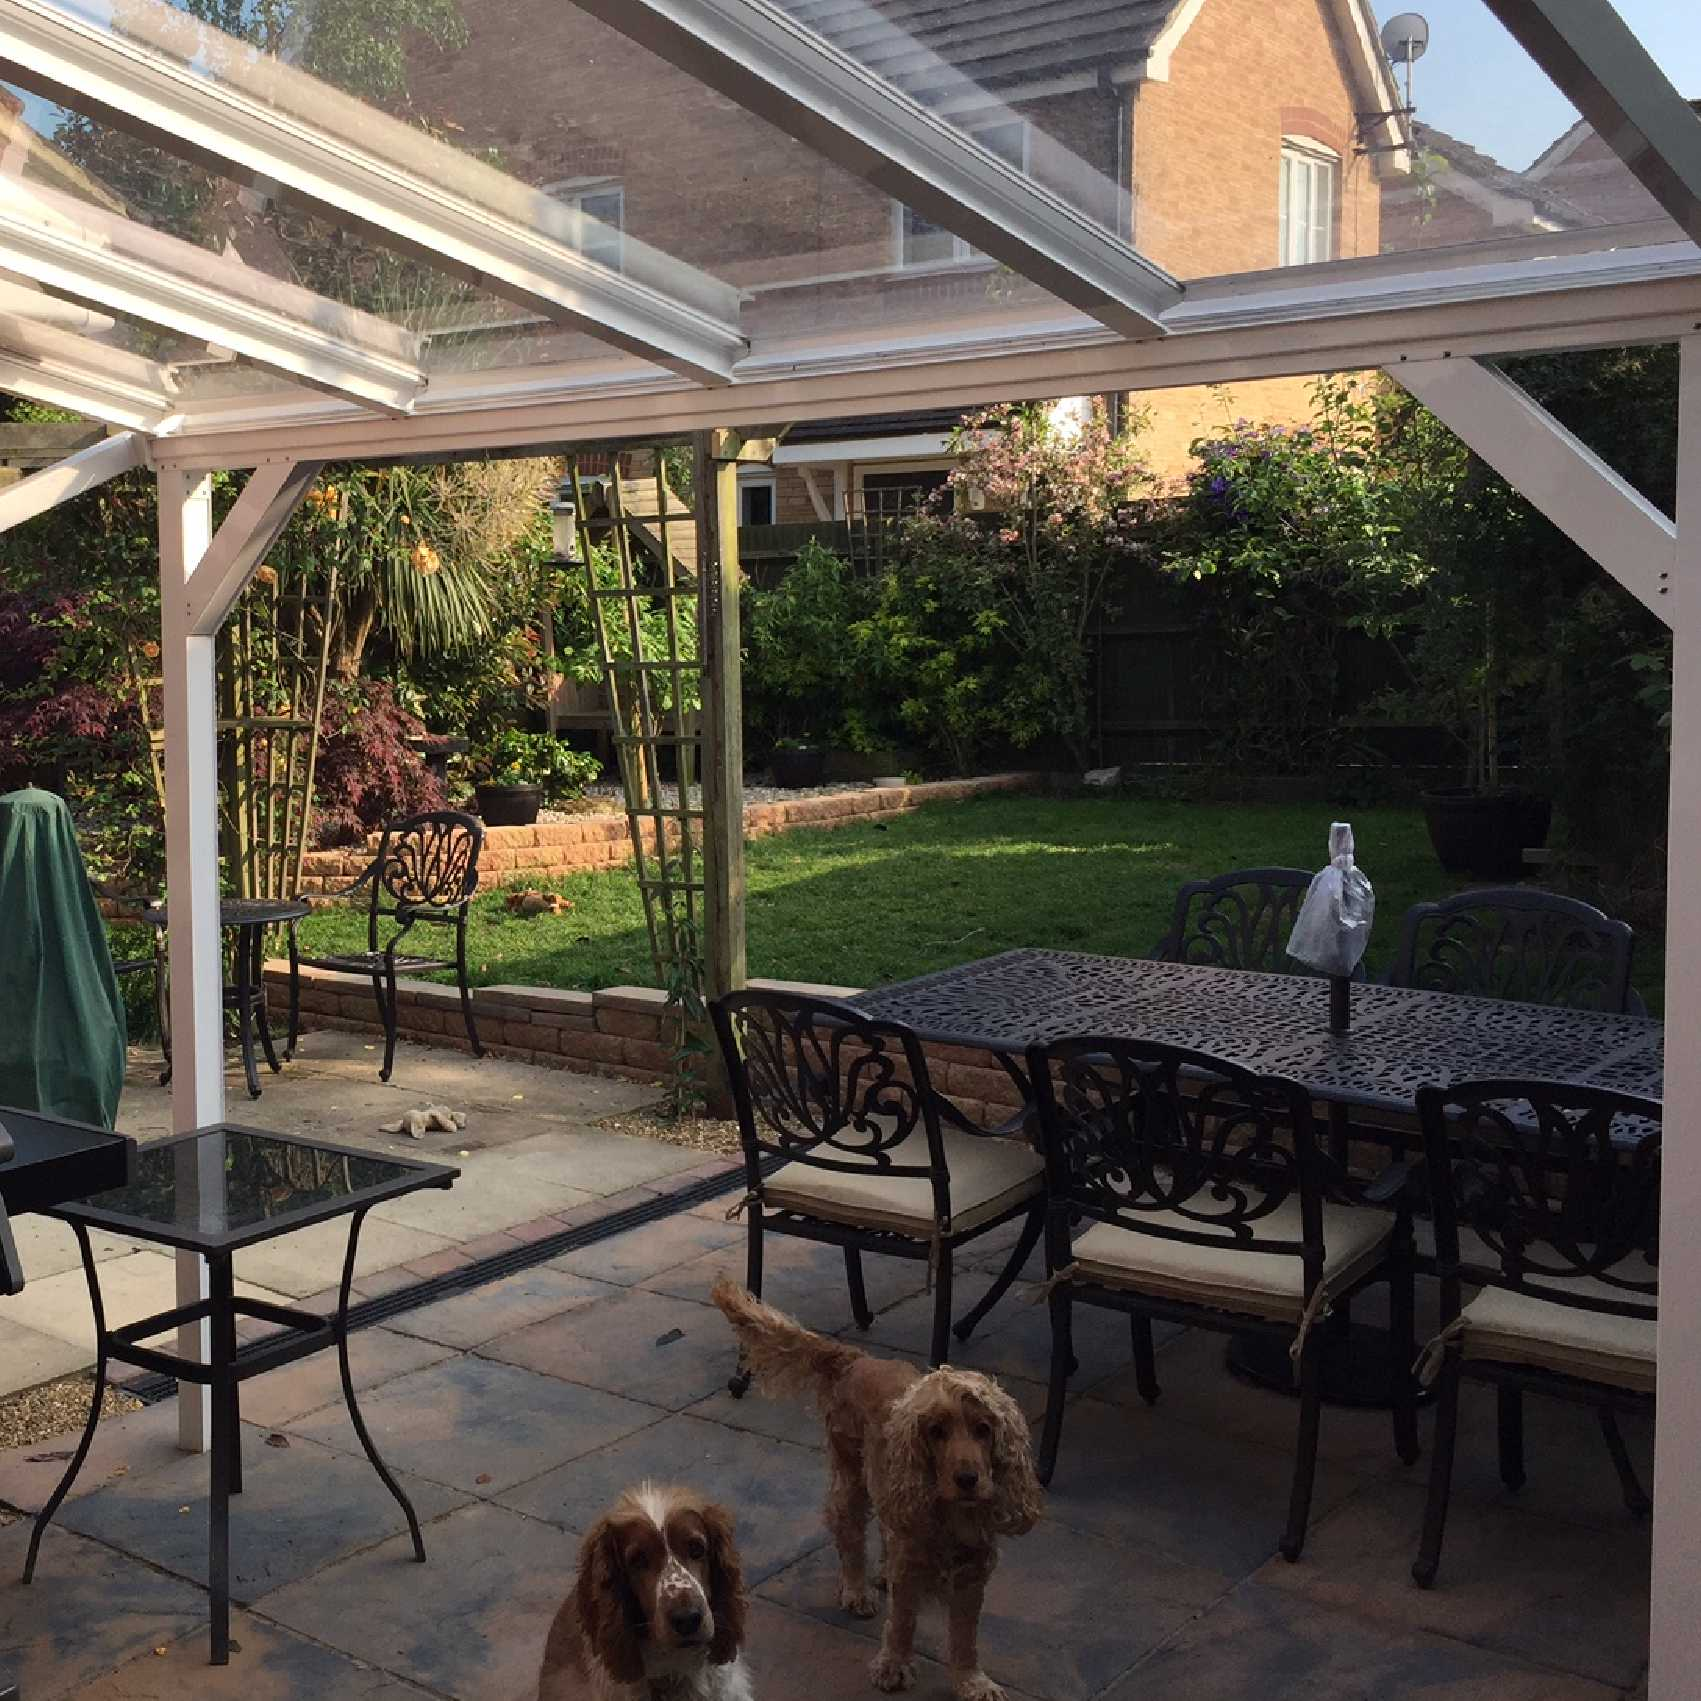 Affordable Omega Smart White Lean-To Canopy with 6mm Glass Clear Plate Polycarbonate Glazing - 2.1m (W) x 1.5m (P), (2) Supporting Posts